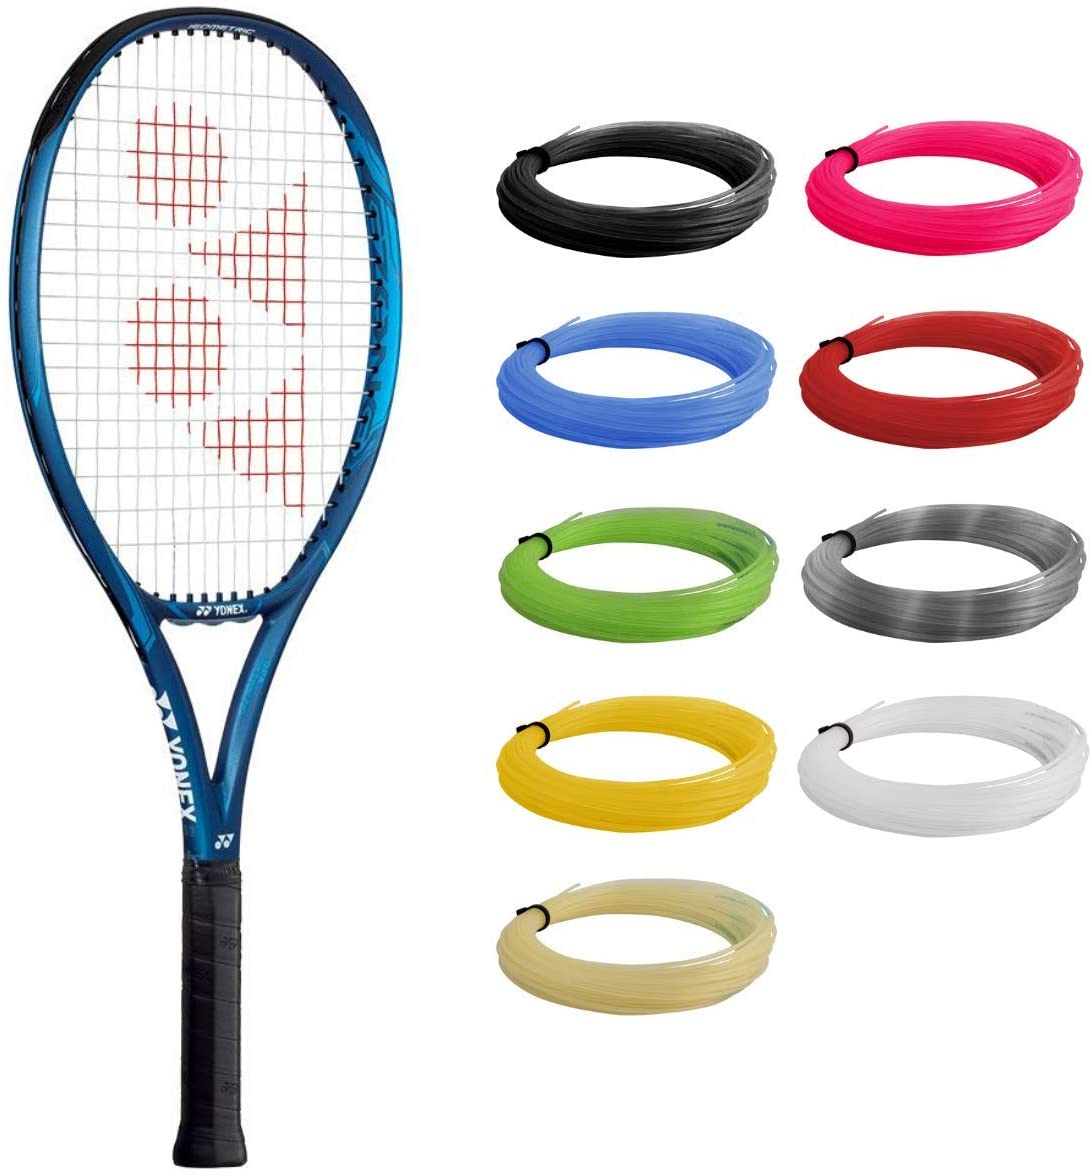 YONEX EZONE 25 Deep Blue Tennis Racquet Strung with Black Synthetic Gut Racket String (Made for Junior Players About to Move Up to Their First Adult Frame)